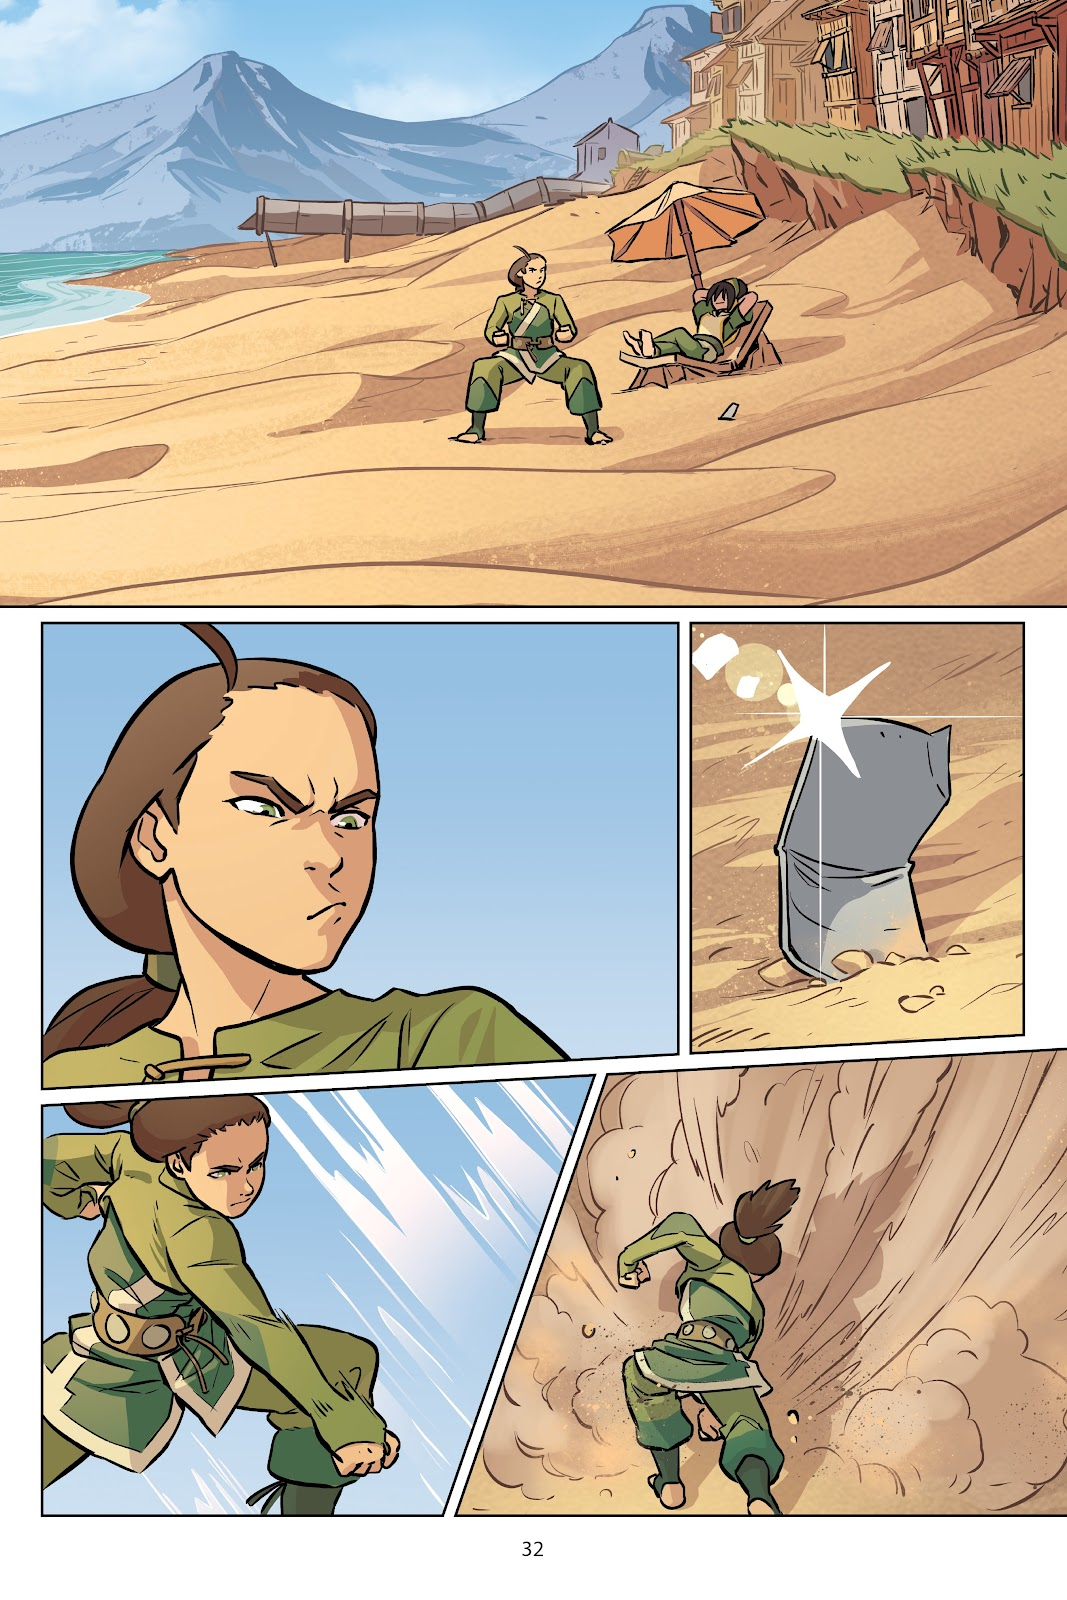 Read online Nickelodeon Avatar: The Last Airbender - Imbalance comic -  Issue # TPB 2 - 33